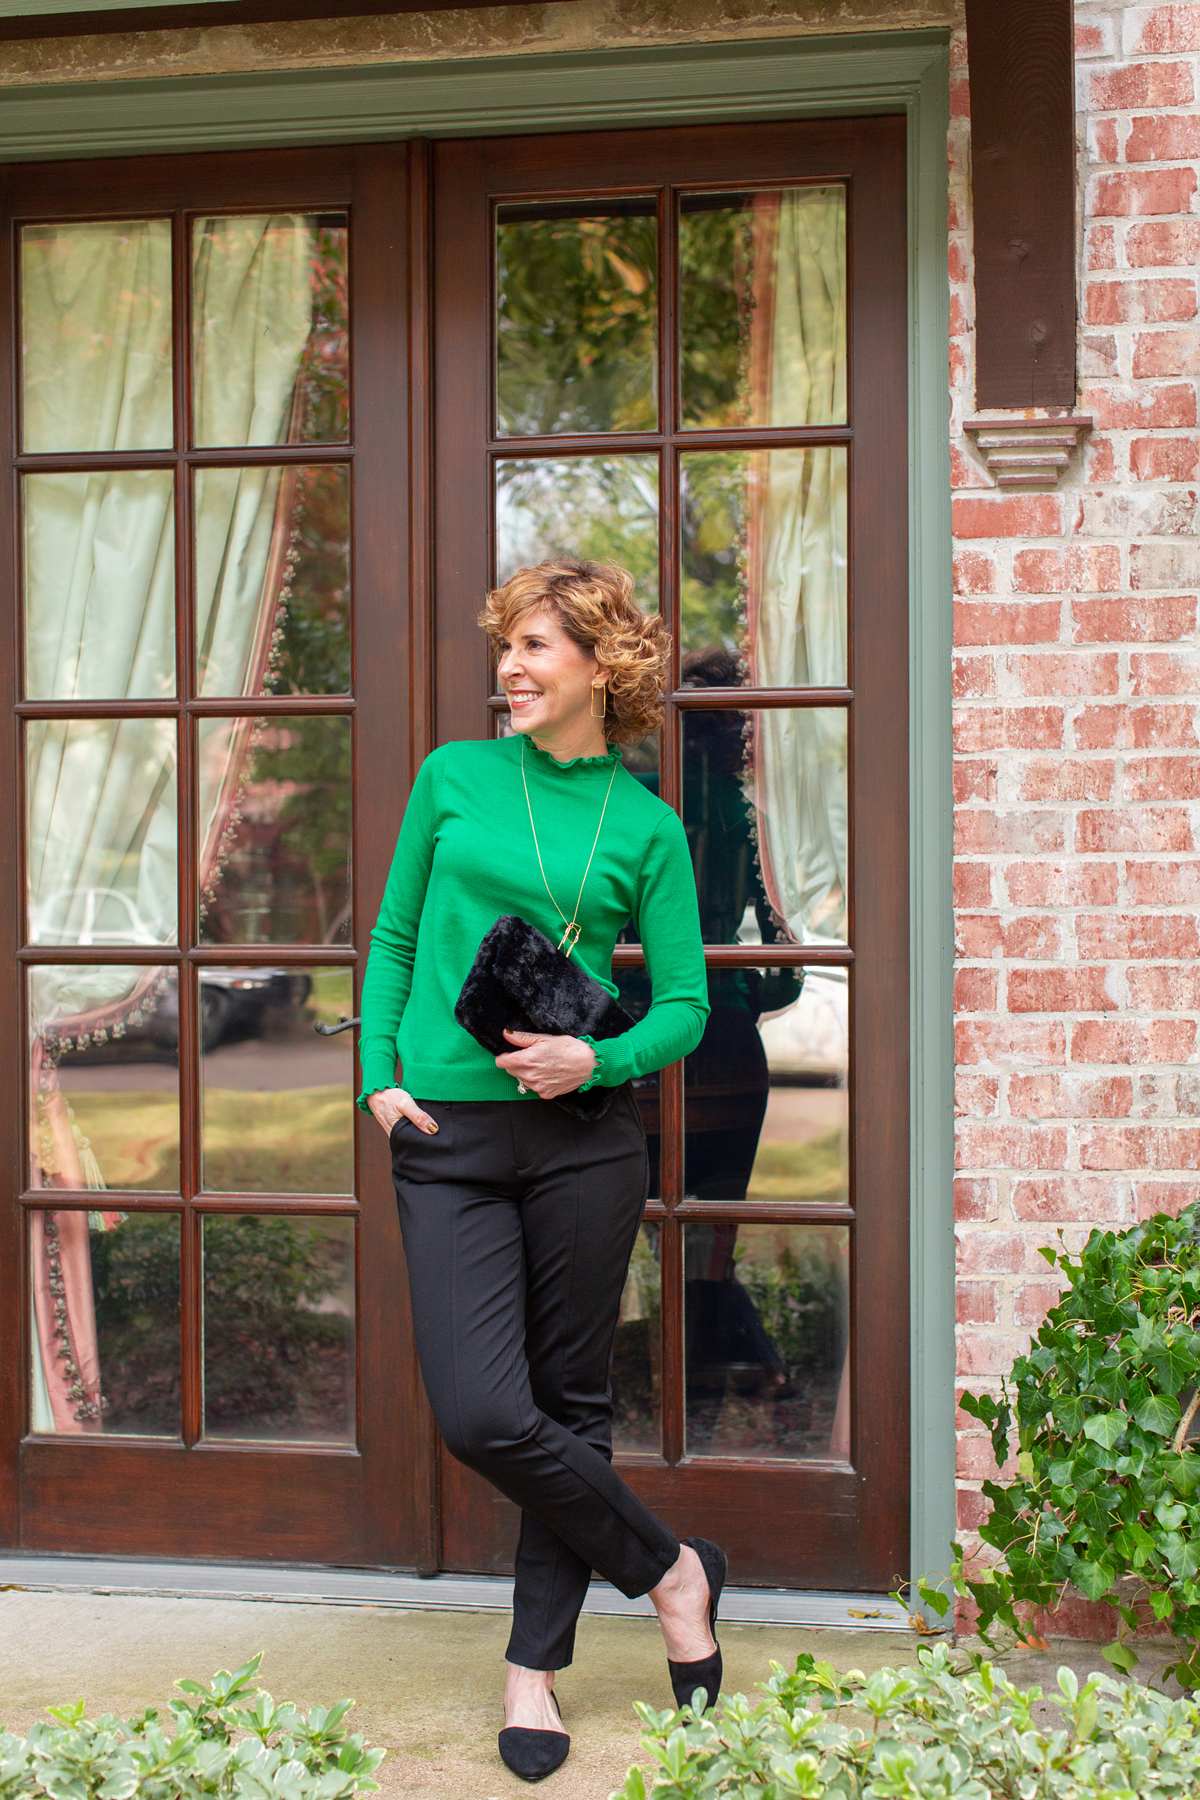 woman in green sweater and black pants standing outside a house